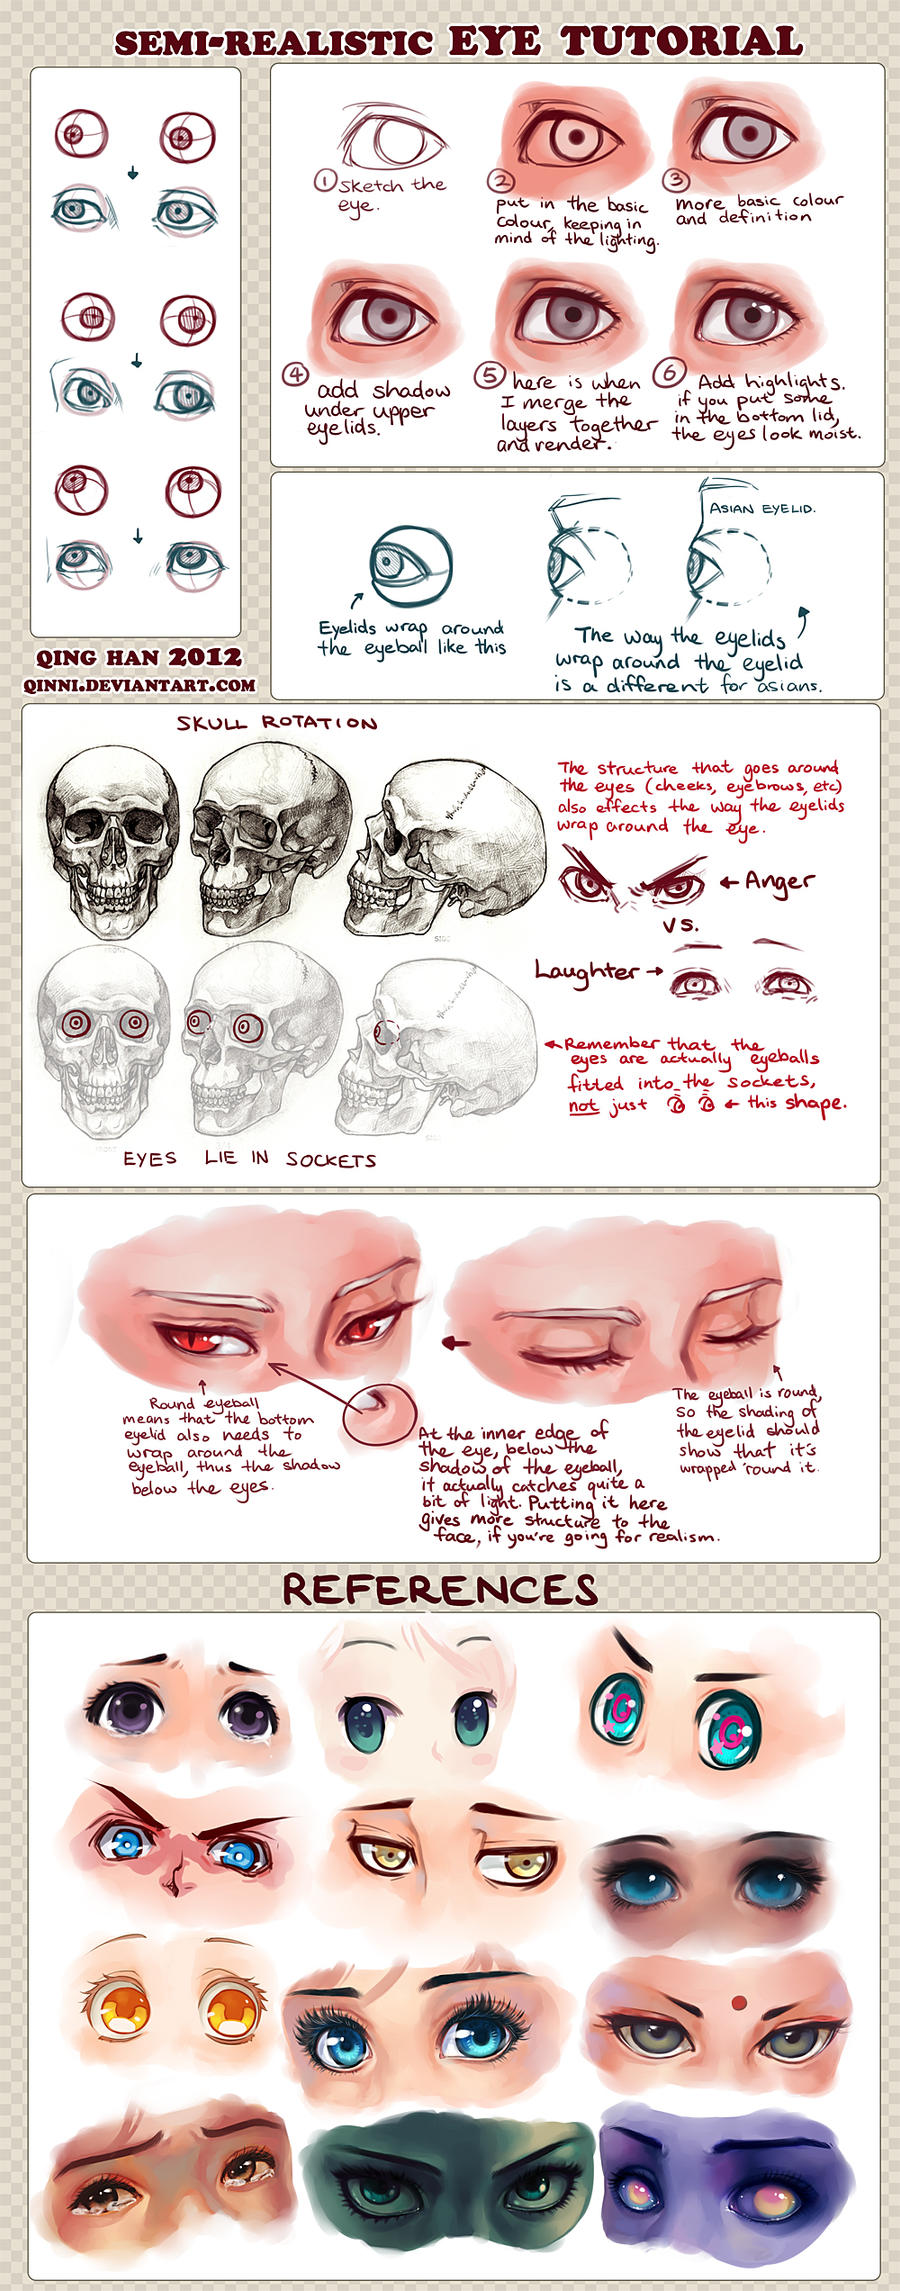 http://fc03.deviantart.net/fs70/i/2012/366/3/3/semi_realistic___anime_eye_tutorial_and_references_by_qinni-d520j2y.jpg